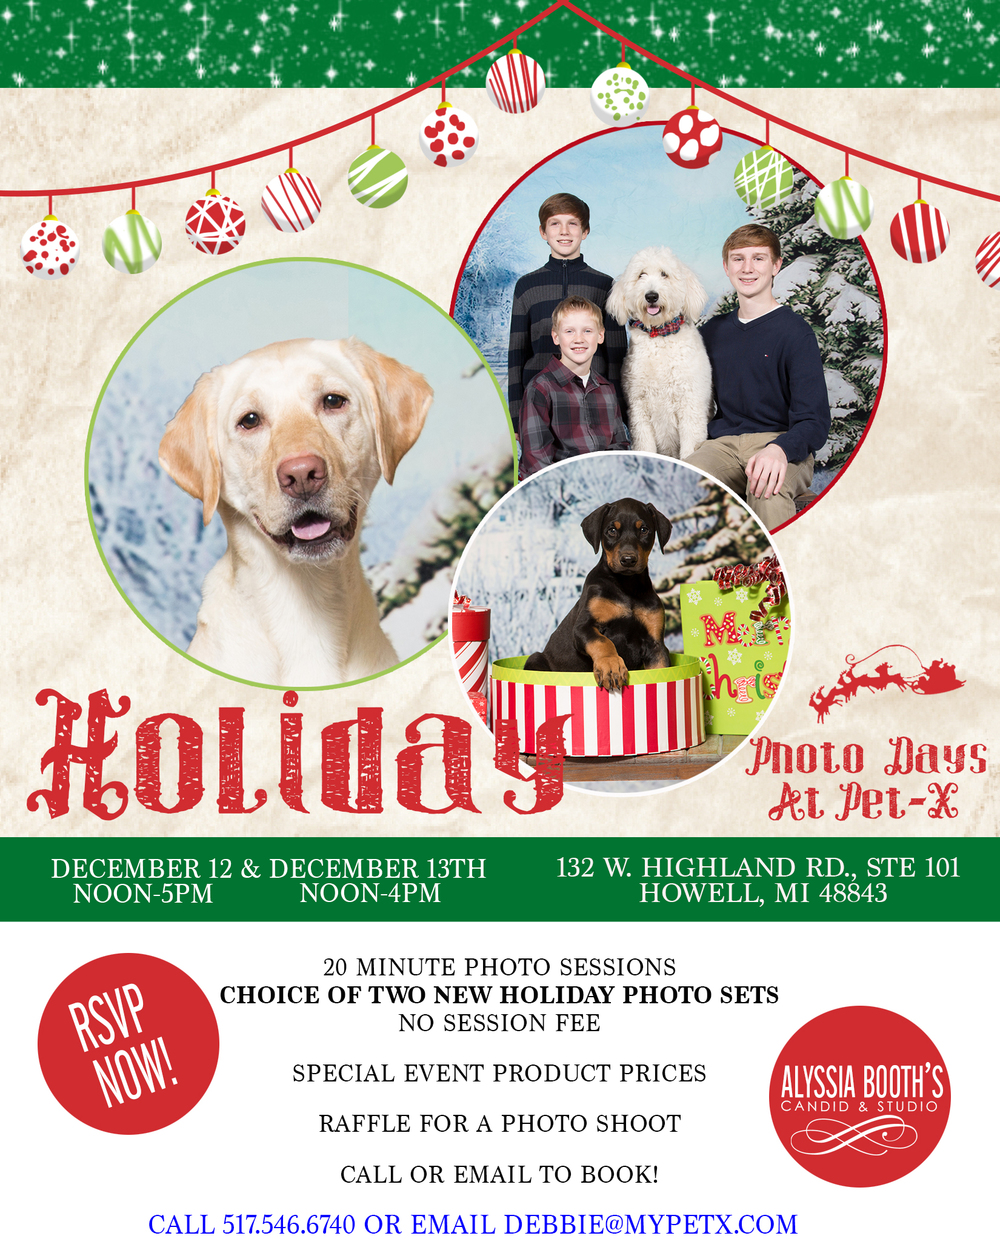 Pet-X Photo Days | Pet and Family Photos With Santa | Alyssia Booth's Candid & Studio | Howell MI